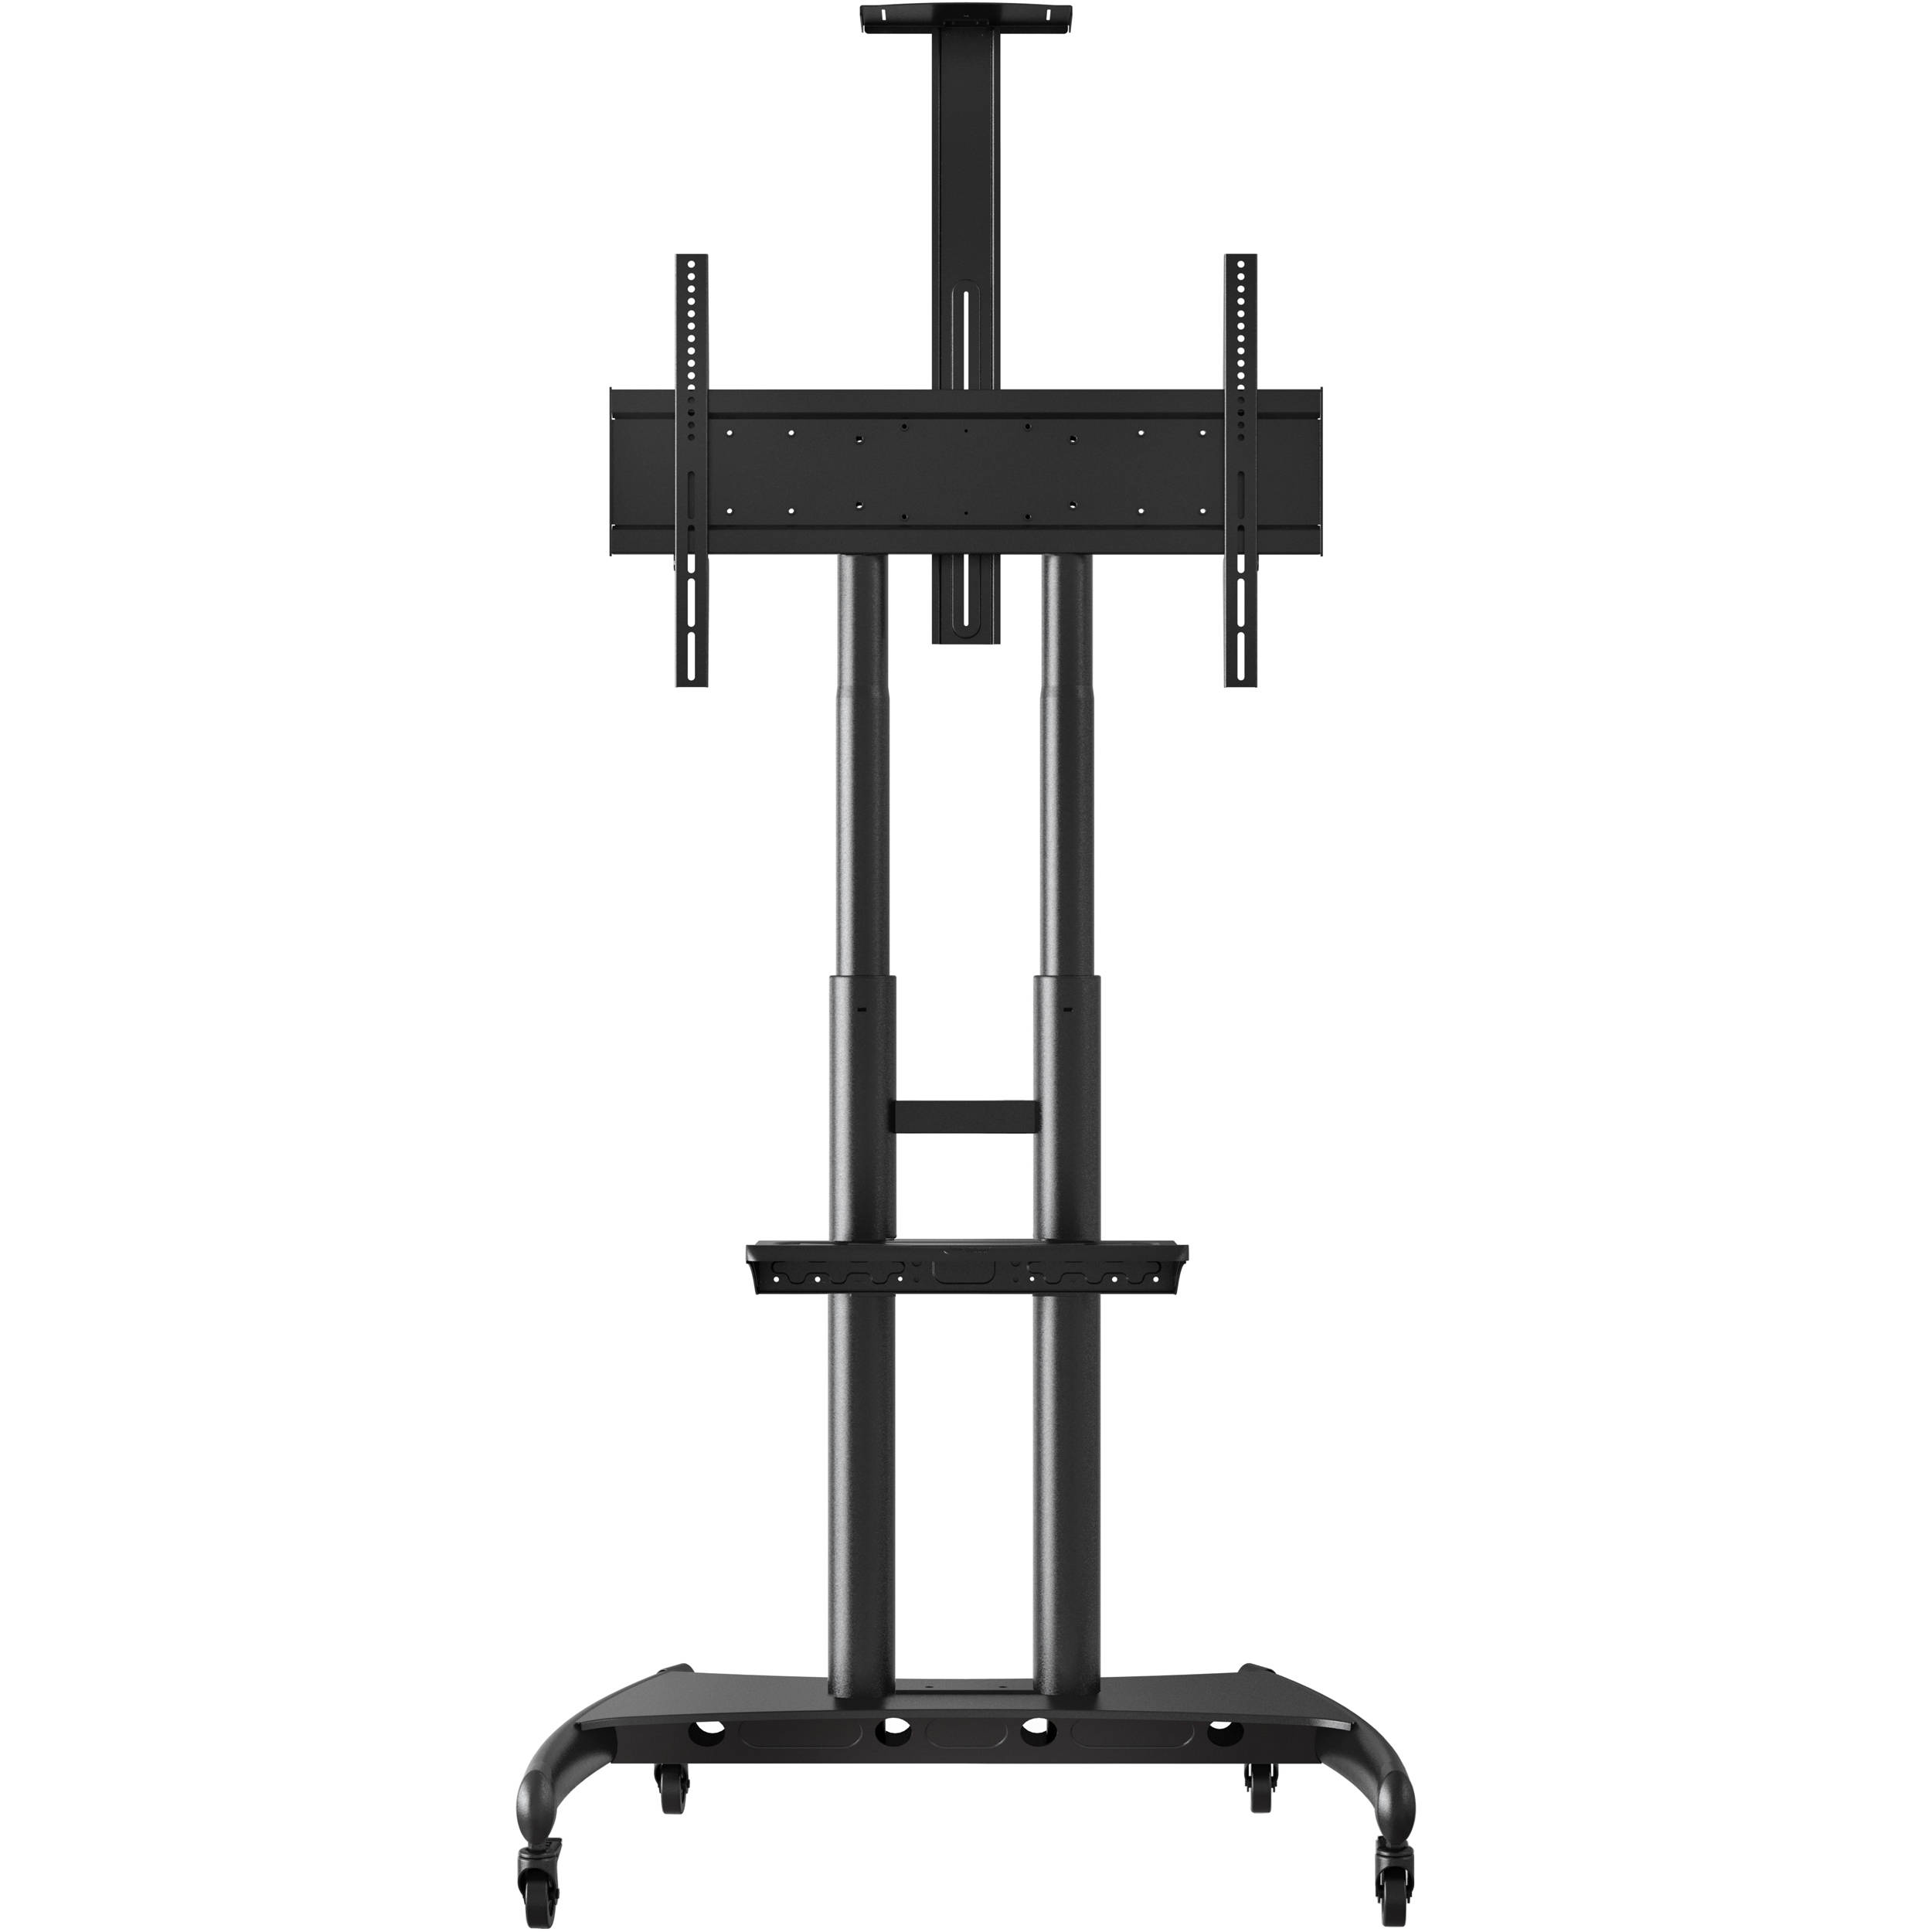 Luxor FP4000 Adjustable Height LCD TV Stand and nbsp Mount with Accessory  Shelf and Camera Mount. Luxor FP4000 Adjustable Height LCD TV Stand FP4000 B H Photo